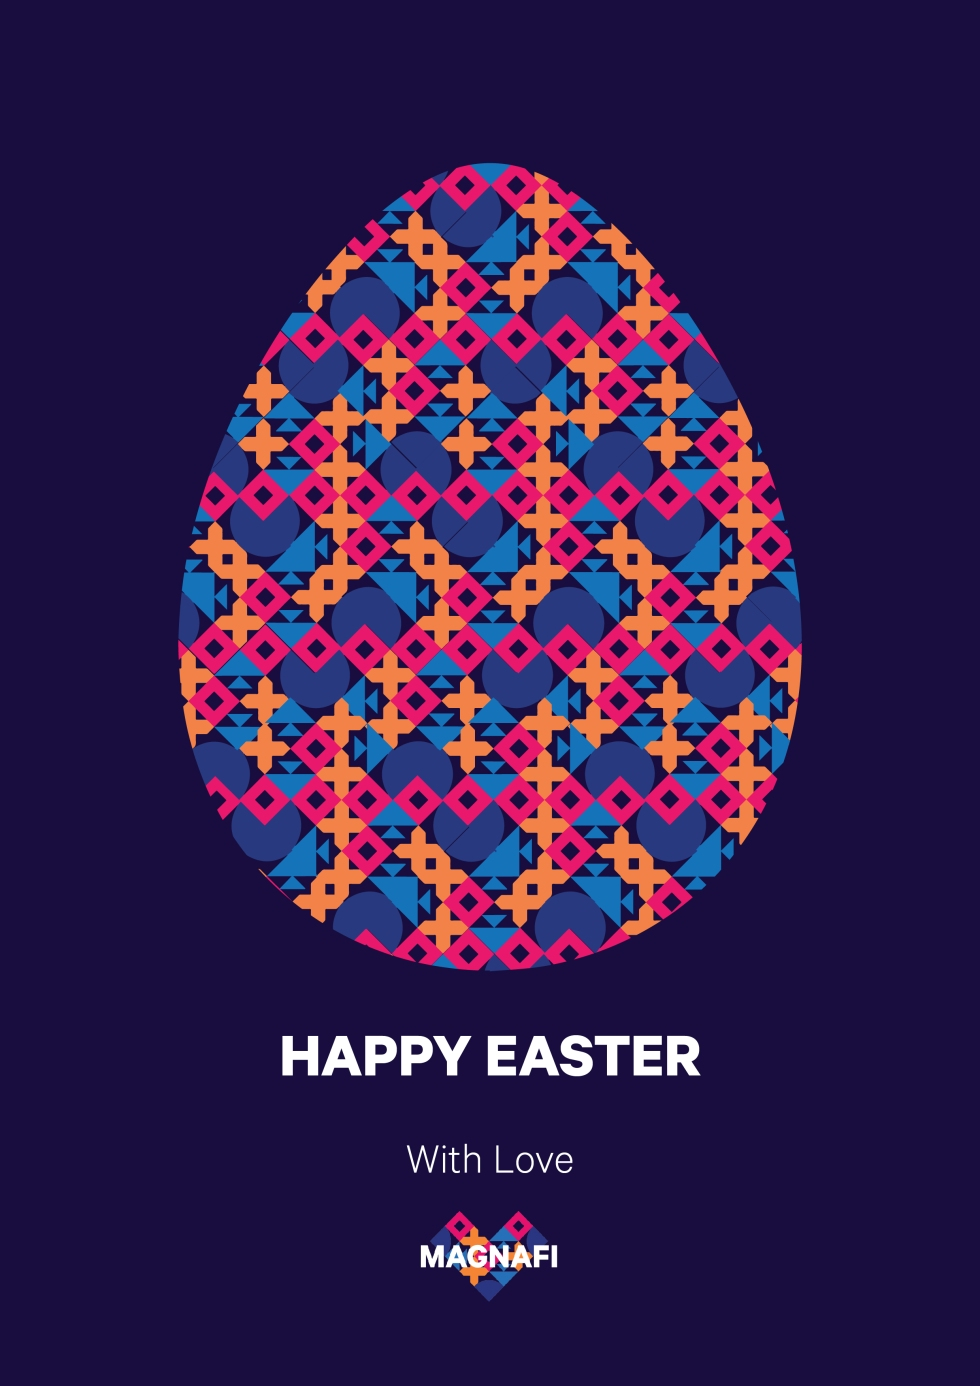 Magnafi easter card.jpg